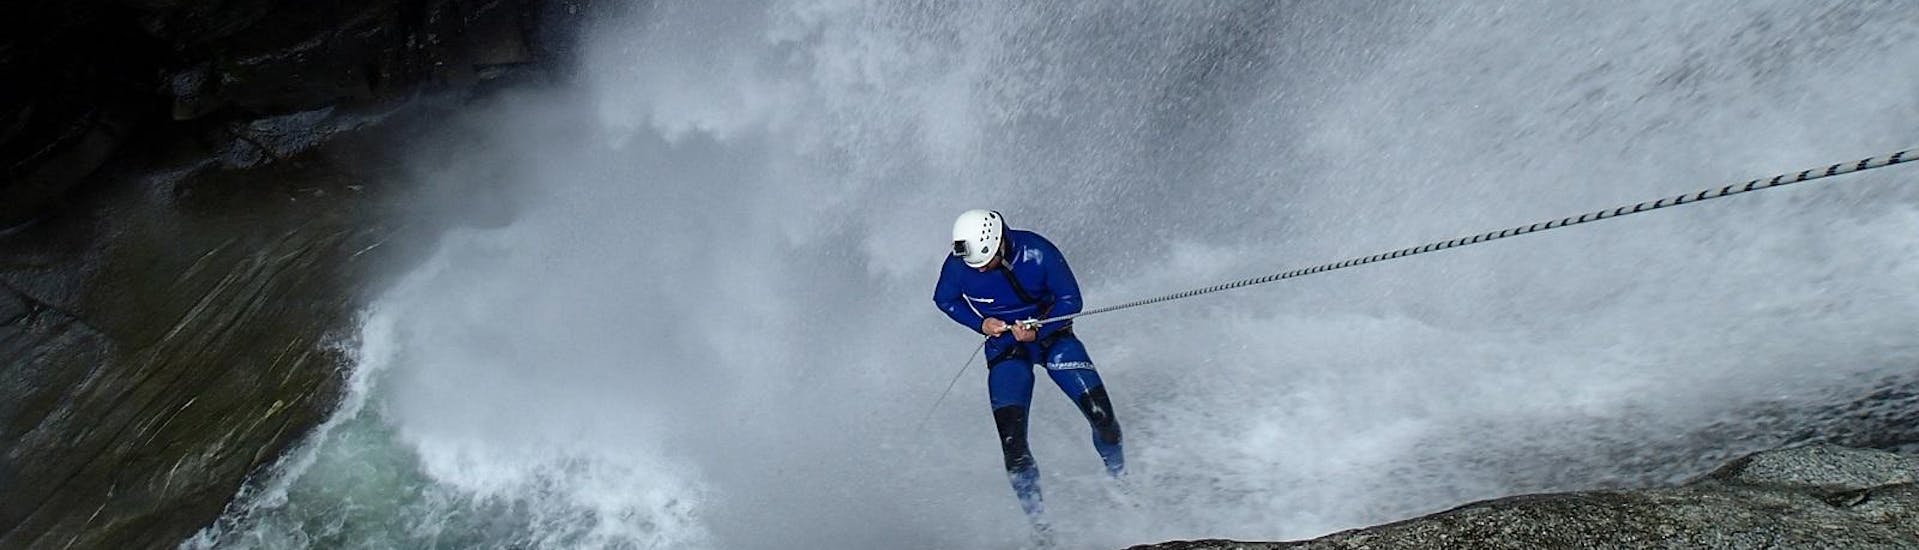 Canyoning for Adrenaline Junkies - Iragna